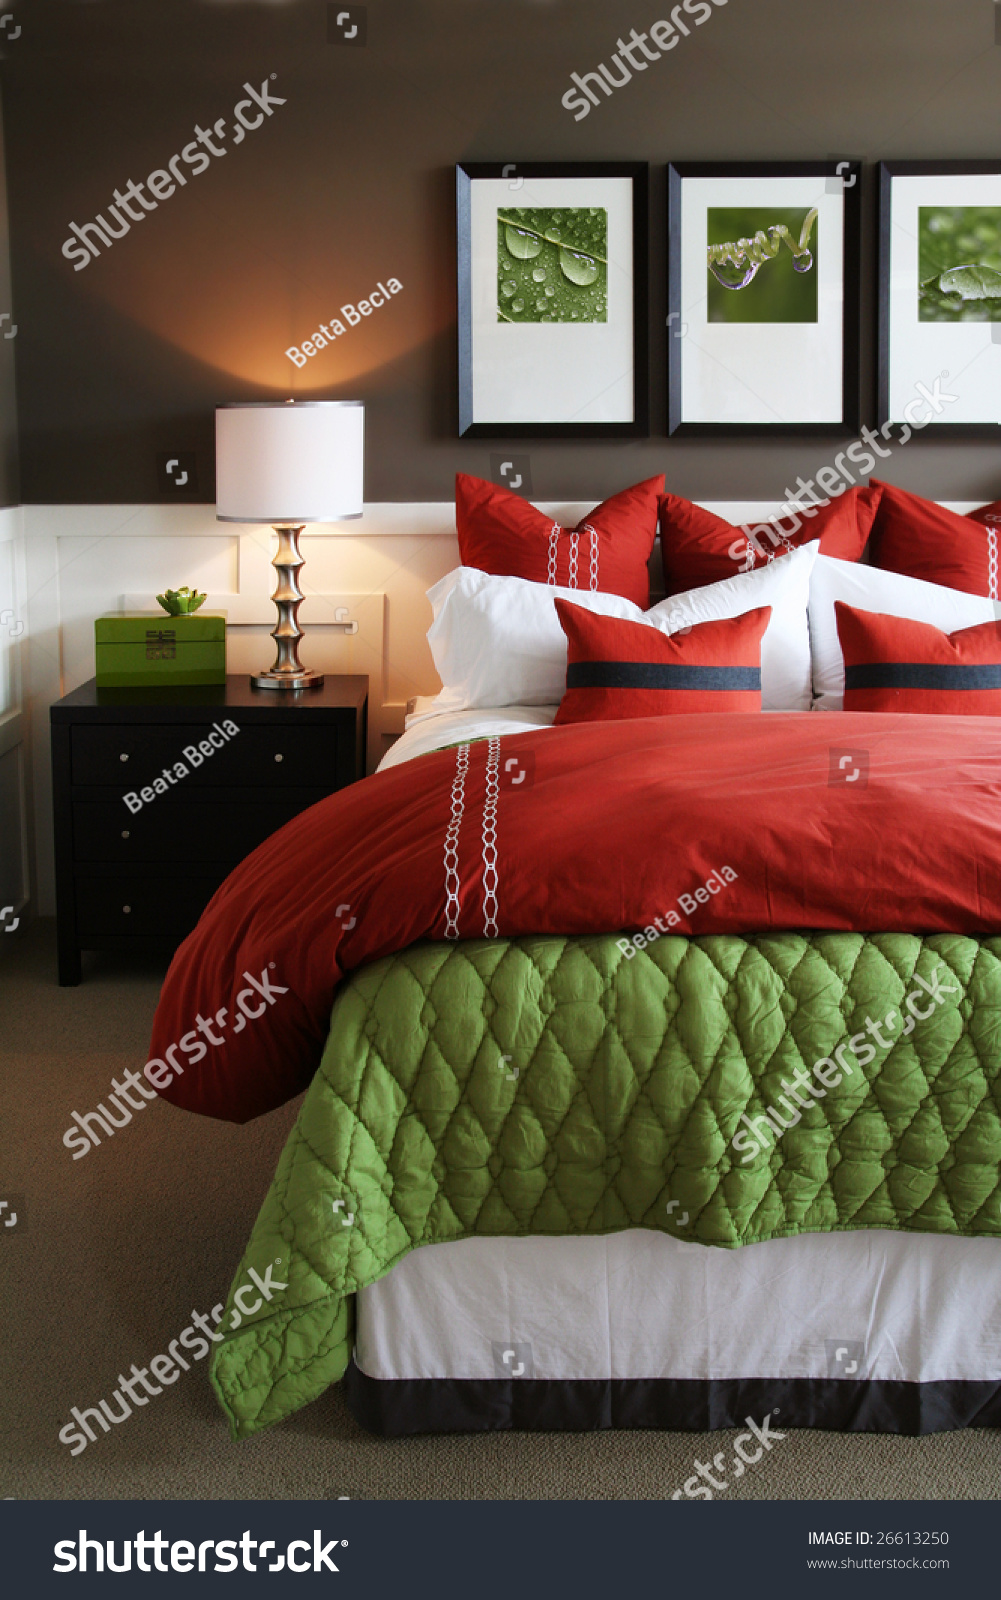 Hotel Bedroom: Modern, Warm, Inviting Bedroom Or Hotel Room. Stock Photo